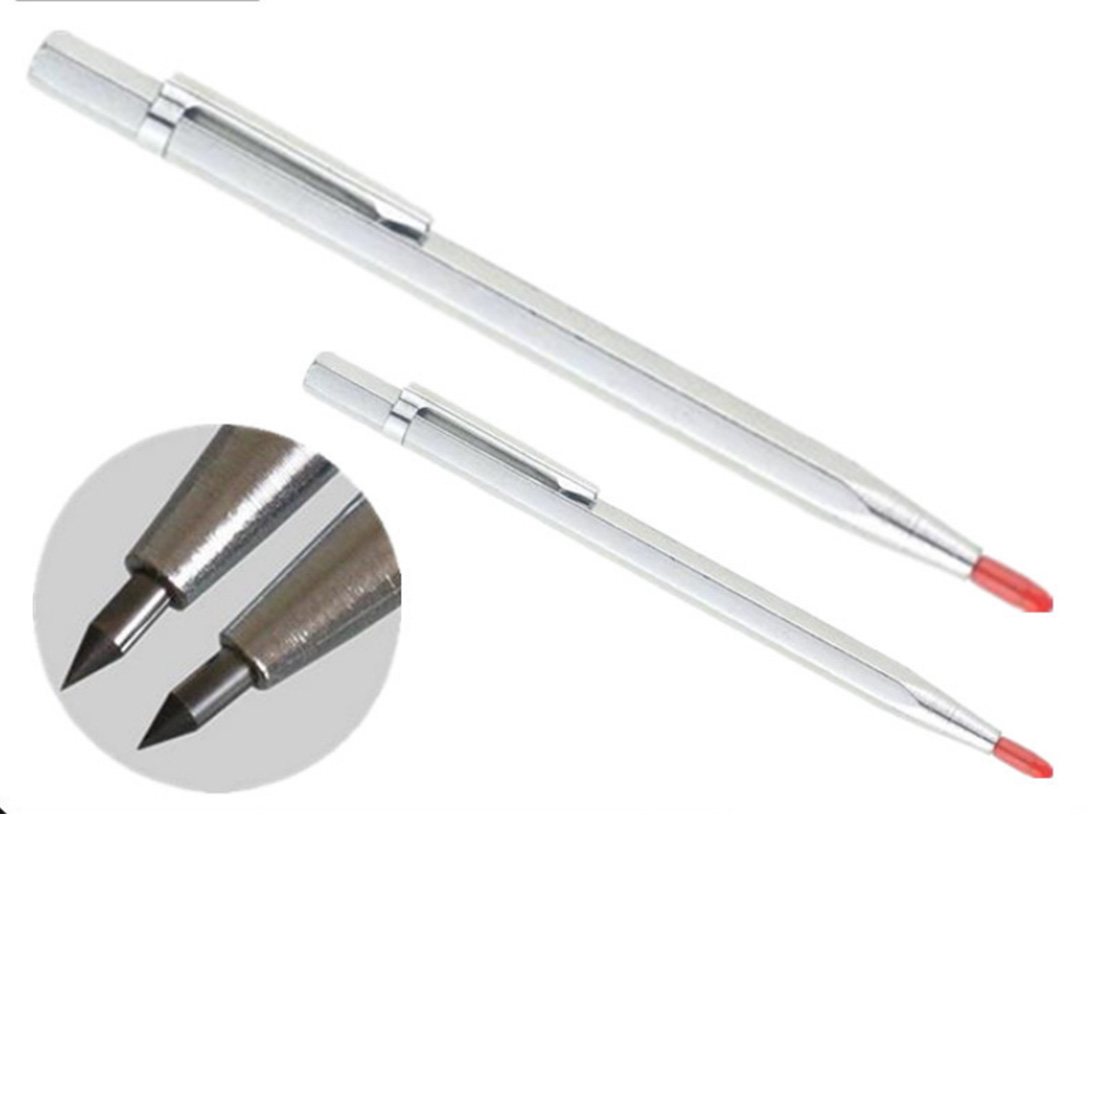 Tungsten Carbide Tip Scriber Etching Engraving Pen Marking Jewelry Lettering Metal Scribe Tool Hand Tool